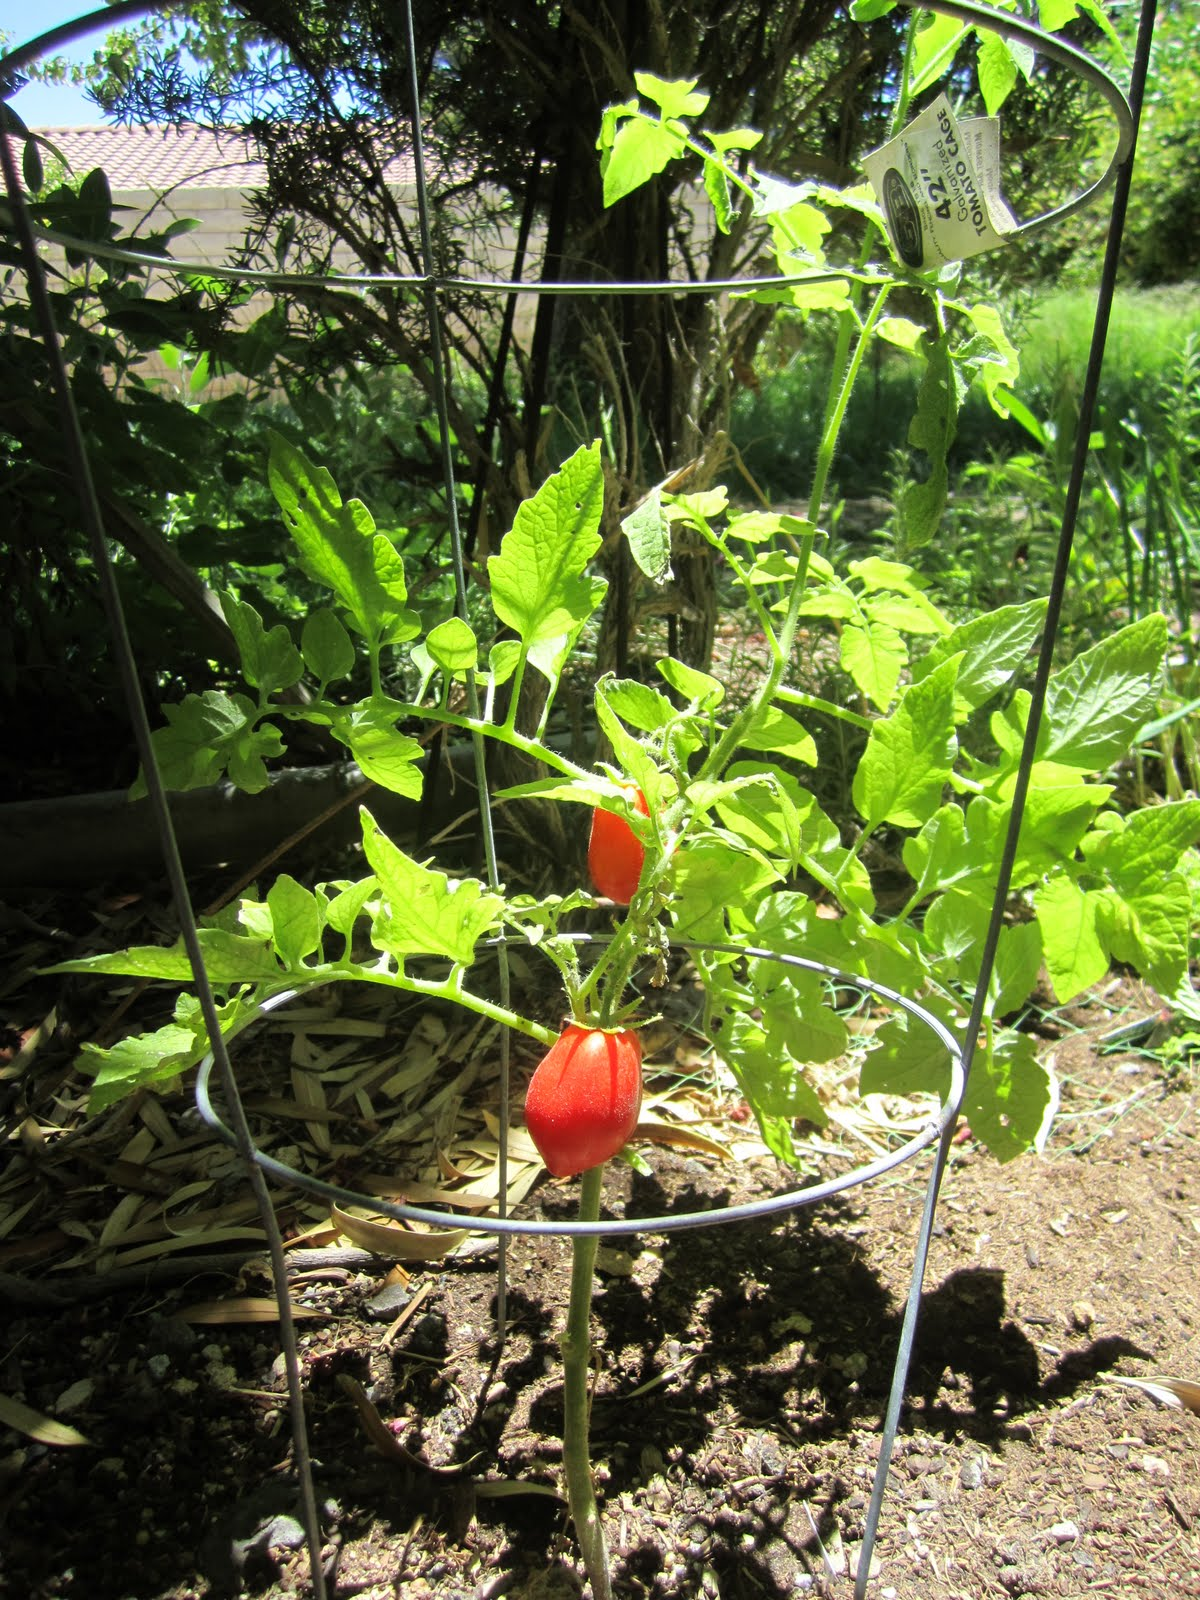 Growing cherry tomatoes in pots - Here Is One Of My Roma Tomato Plants Notice How I Have A Tomato Cage For The Plant To Grow Up Into For Support I Put These In My Potted Cherry Tomatoes